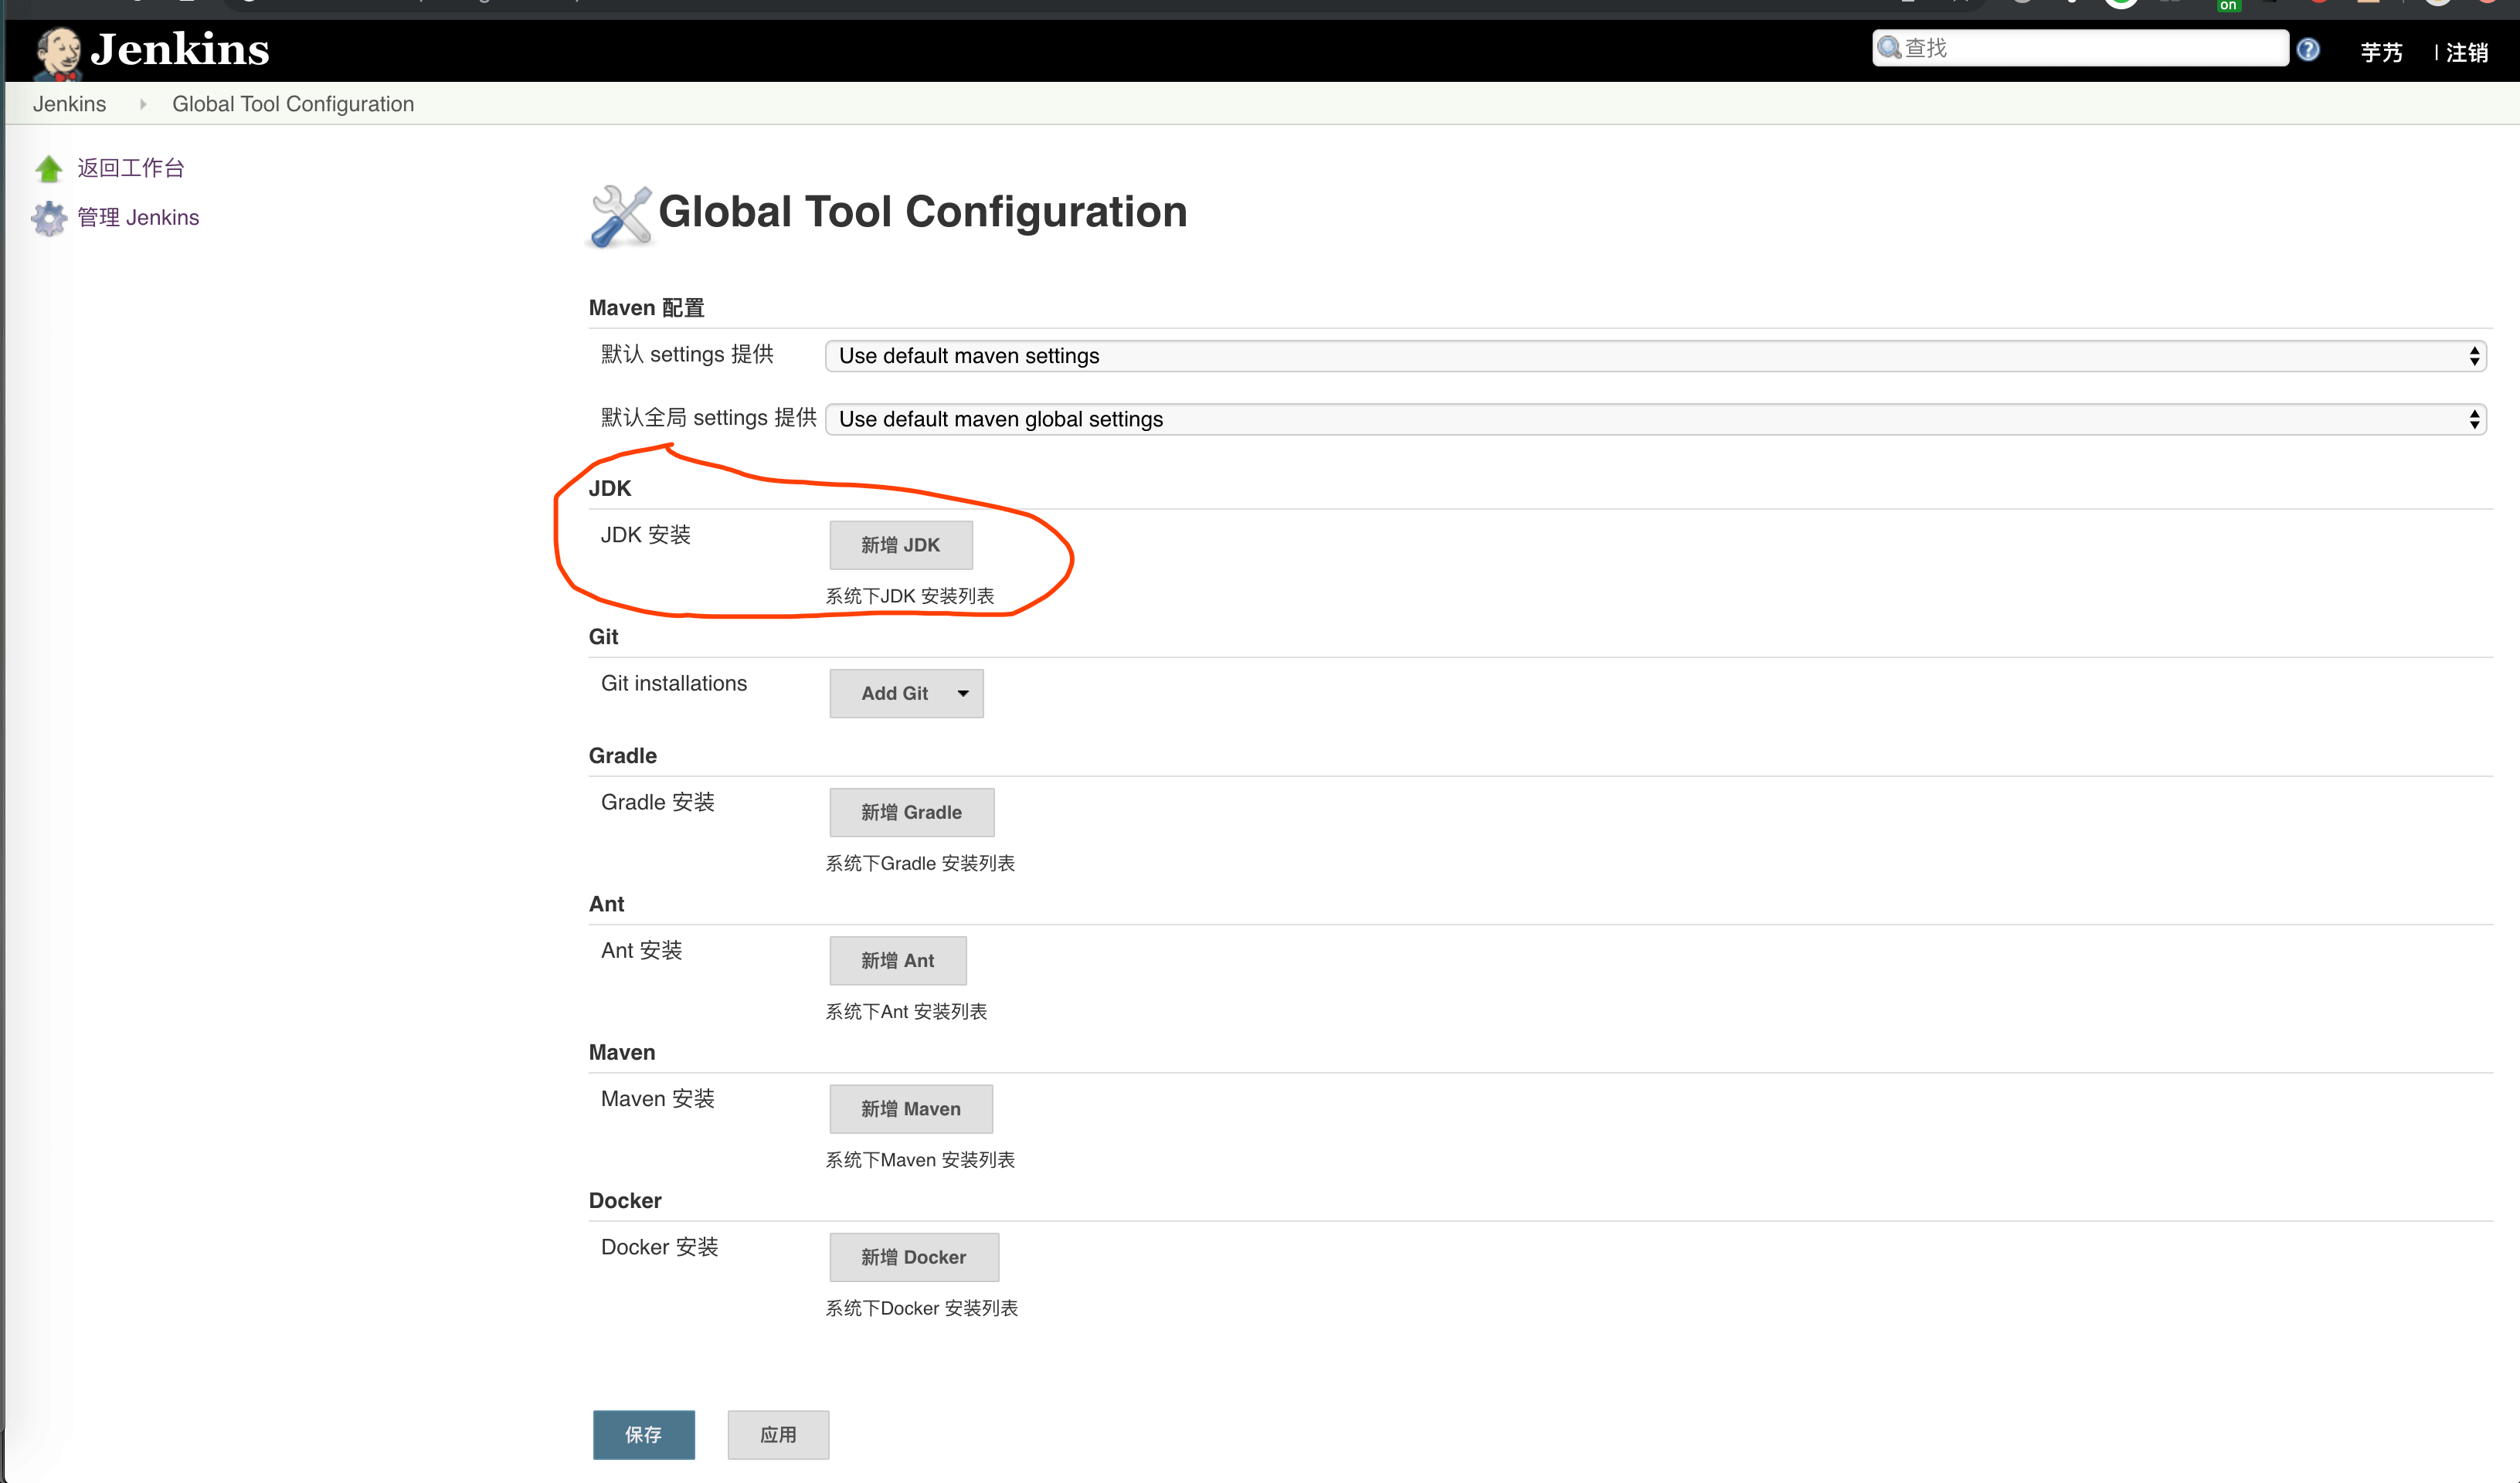 Global Tool Configuration